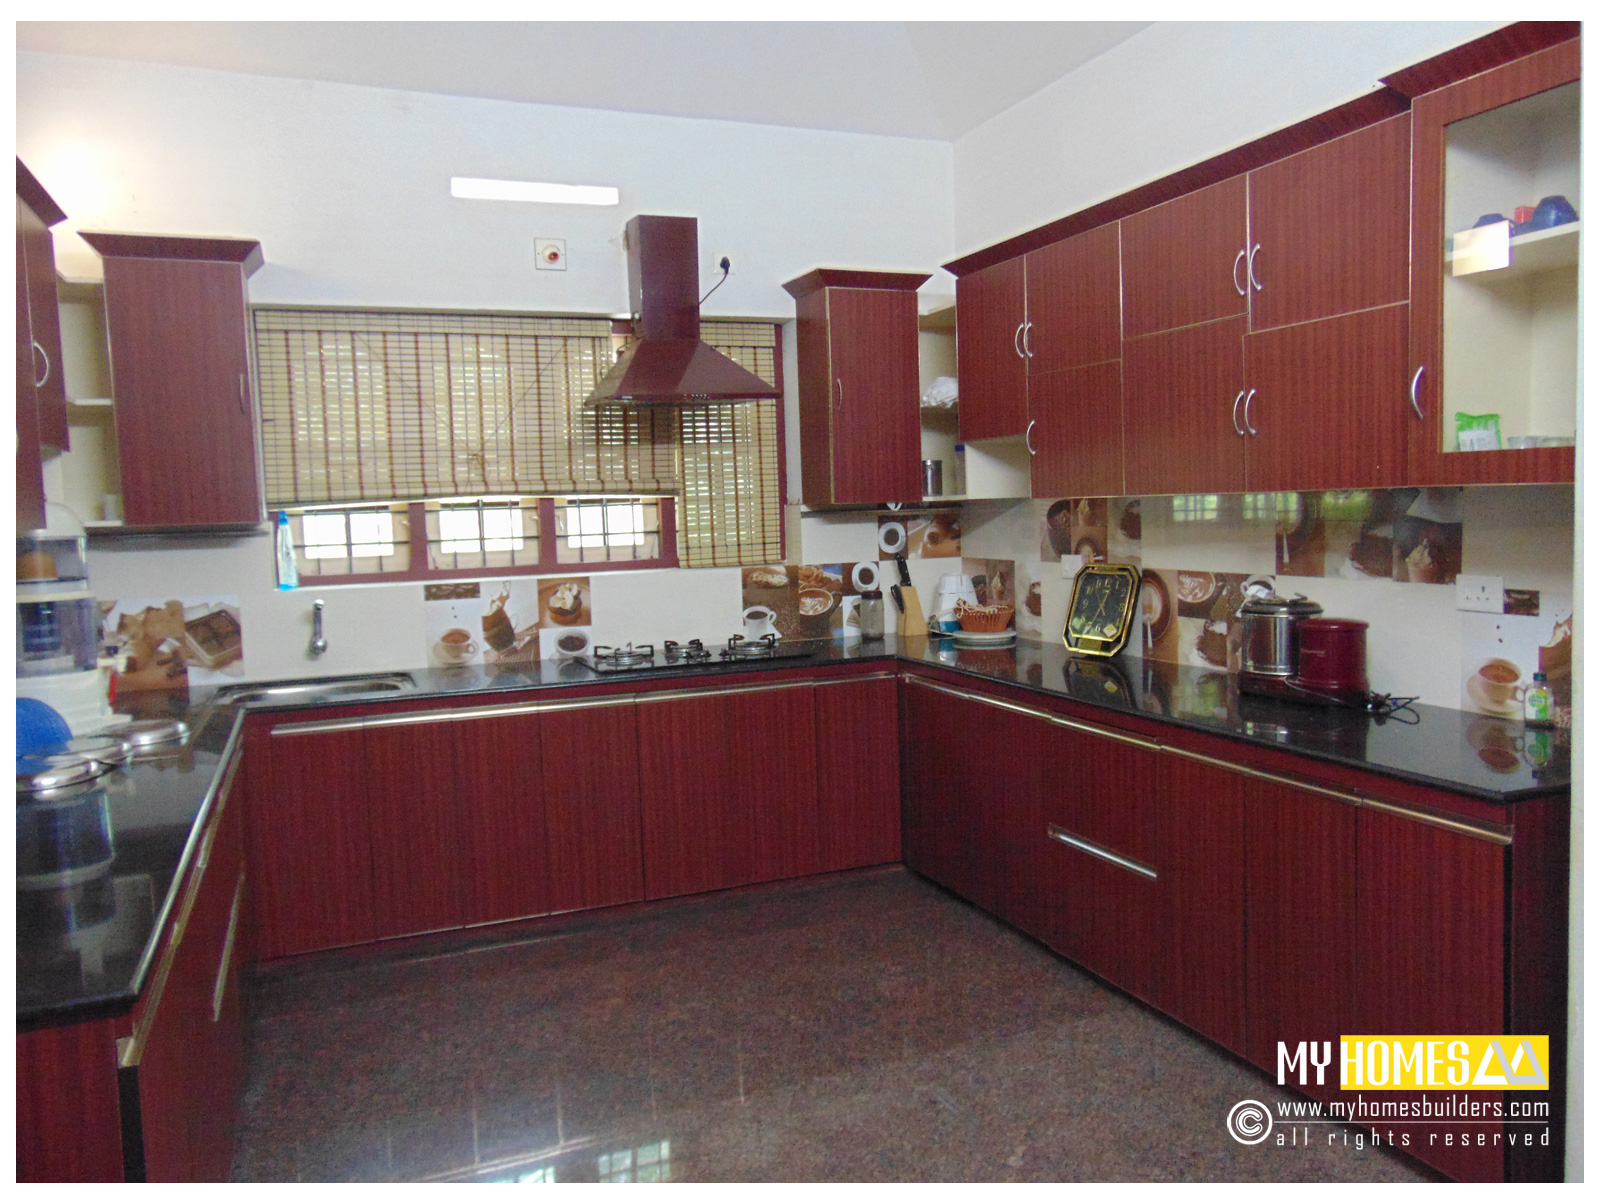 Budget house kerala home designers builder in thrissur india for Kitchen design kerala